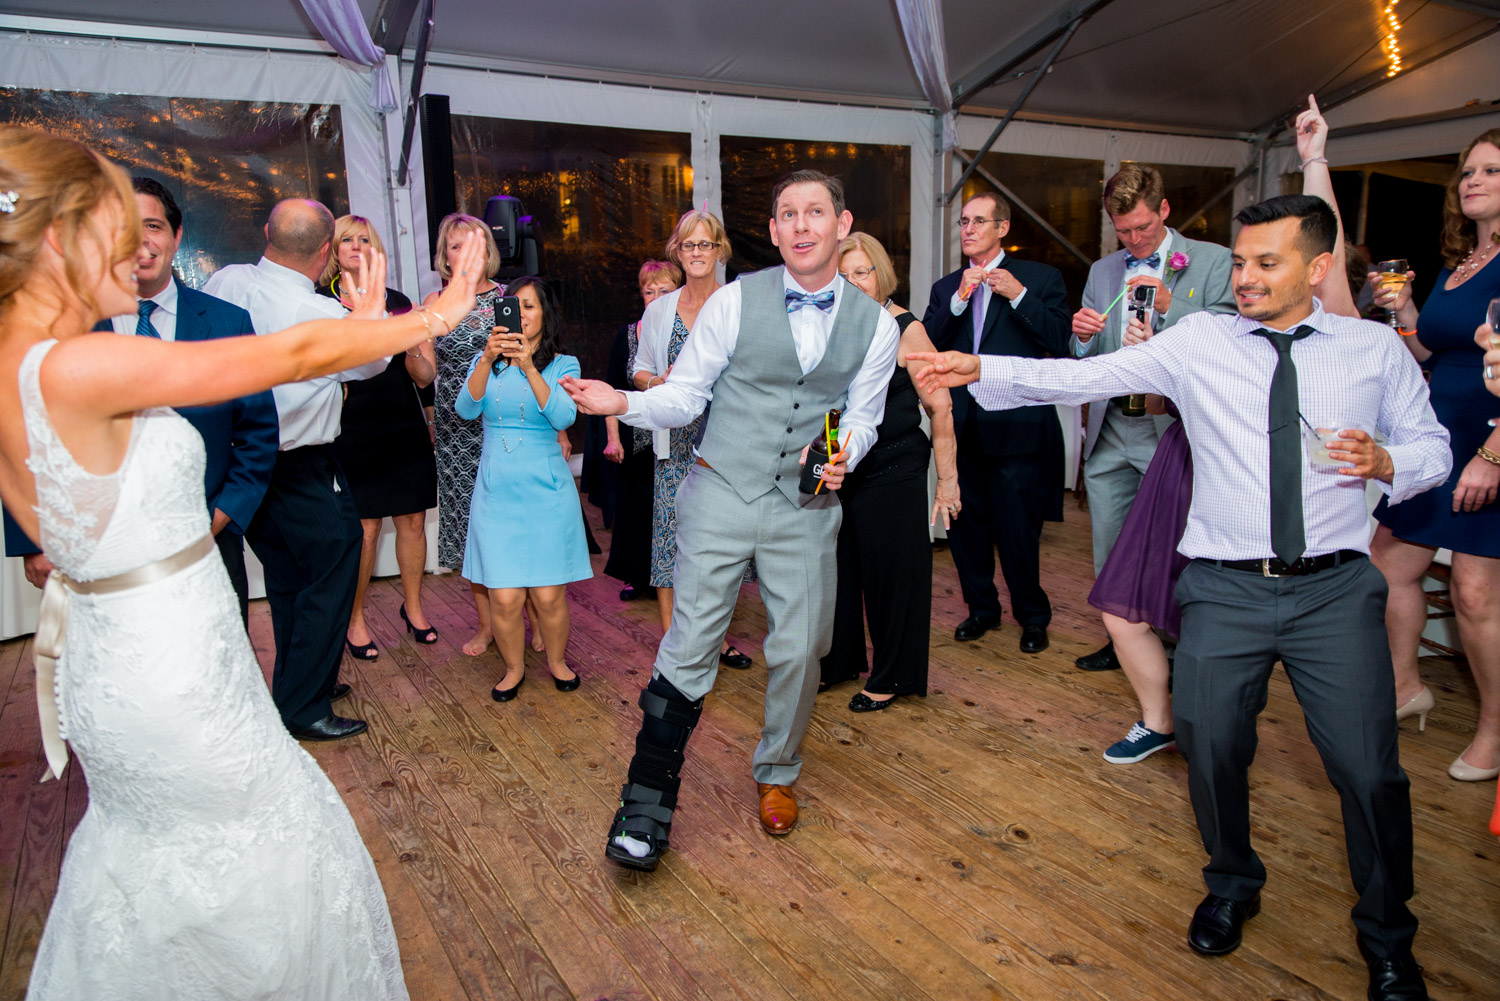 Bride and groom on the dance floor at Walker's Overlook, nighttime wedding photography from Cavin Elizabeth Photography